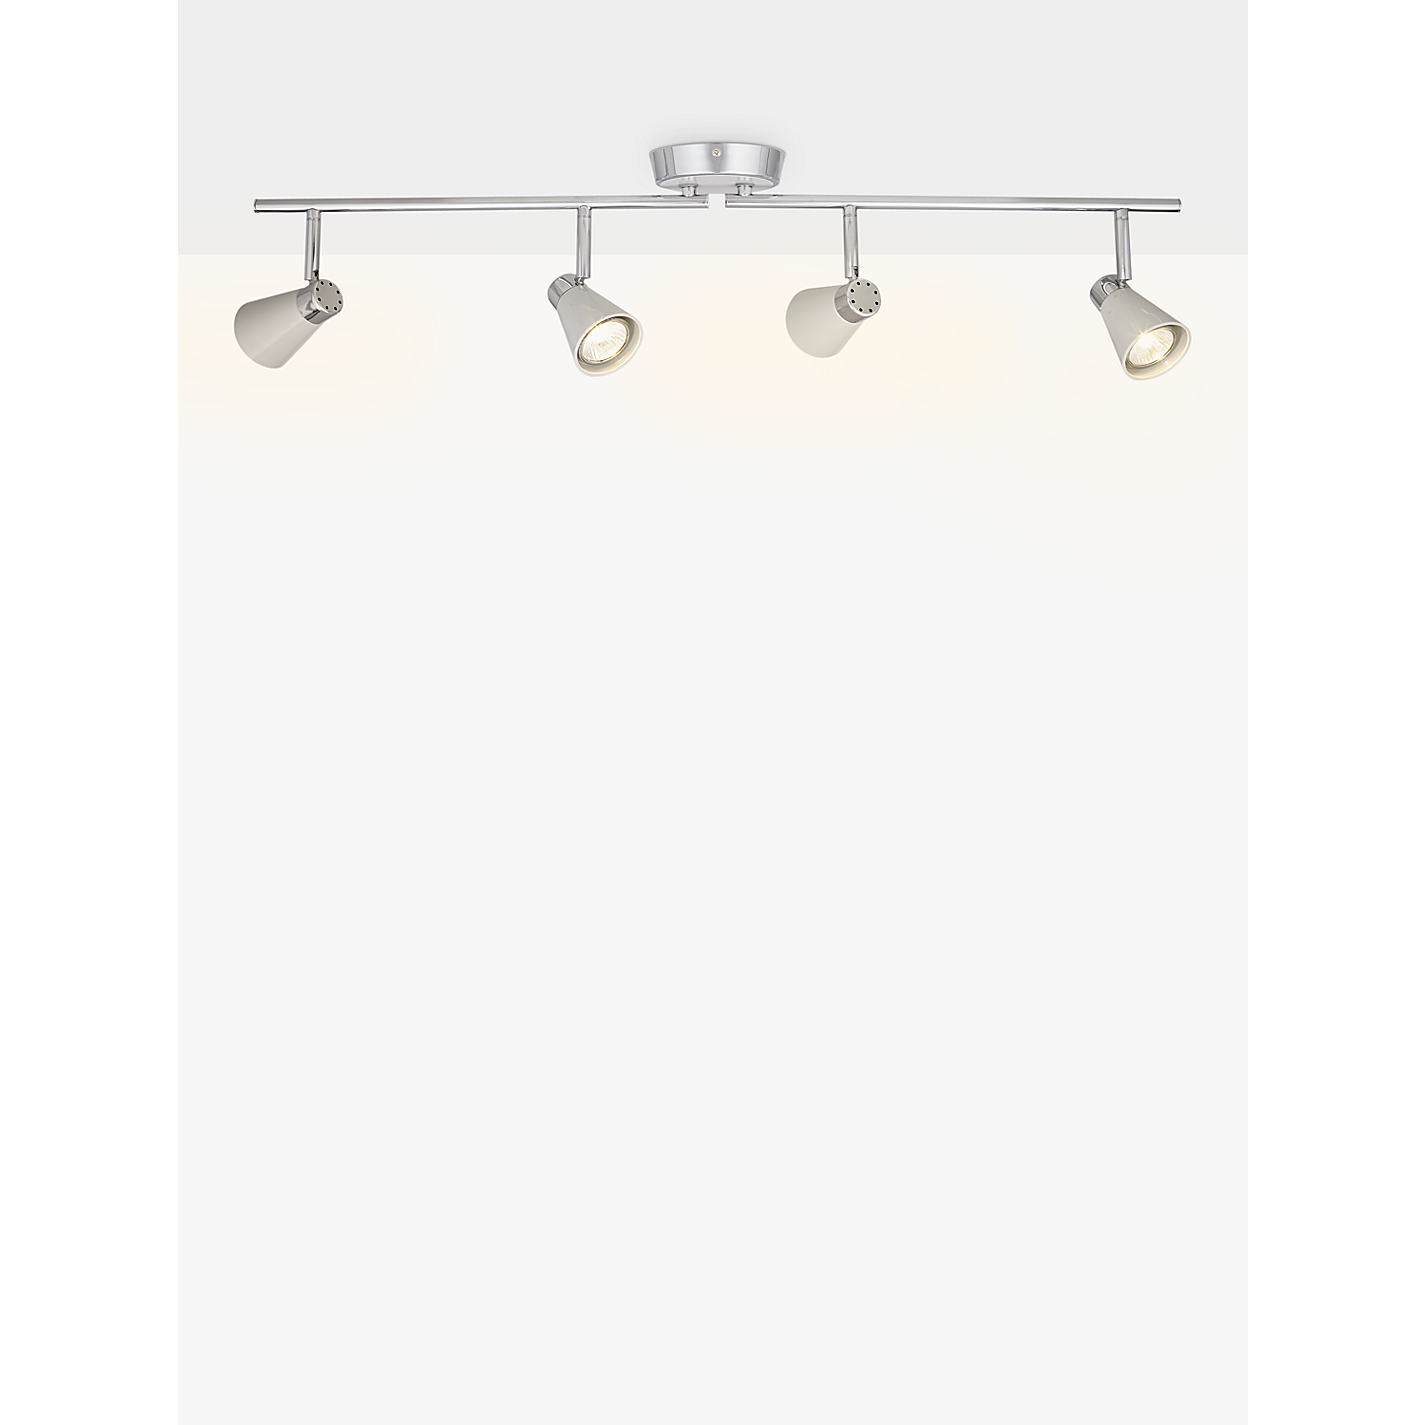 John Lewis Logan Gu10 Led 4 Bar Spotlight Online At Johnlewis